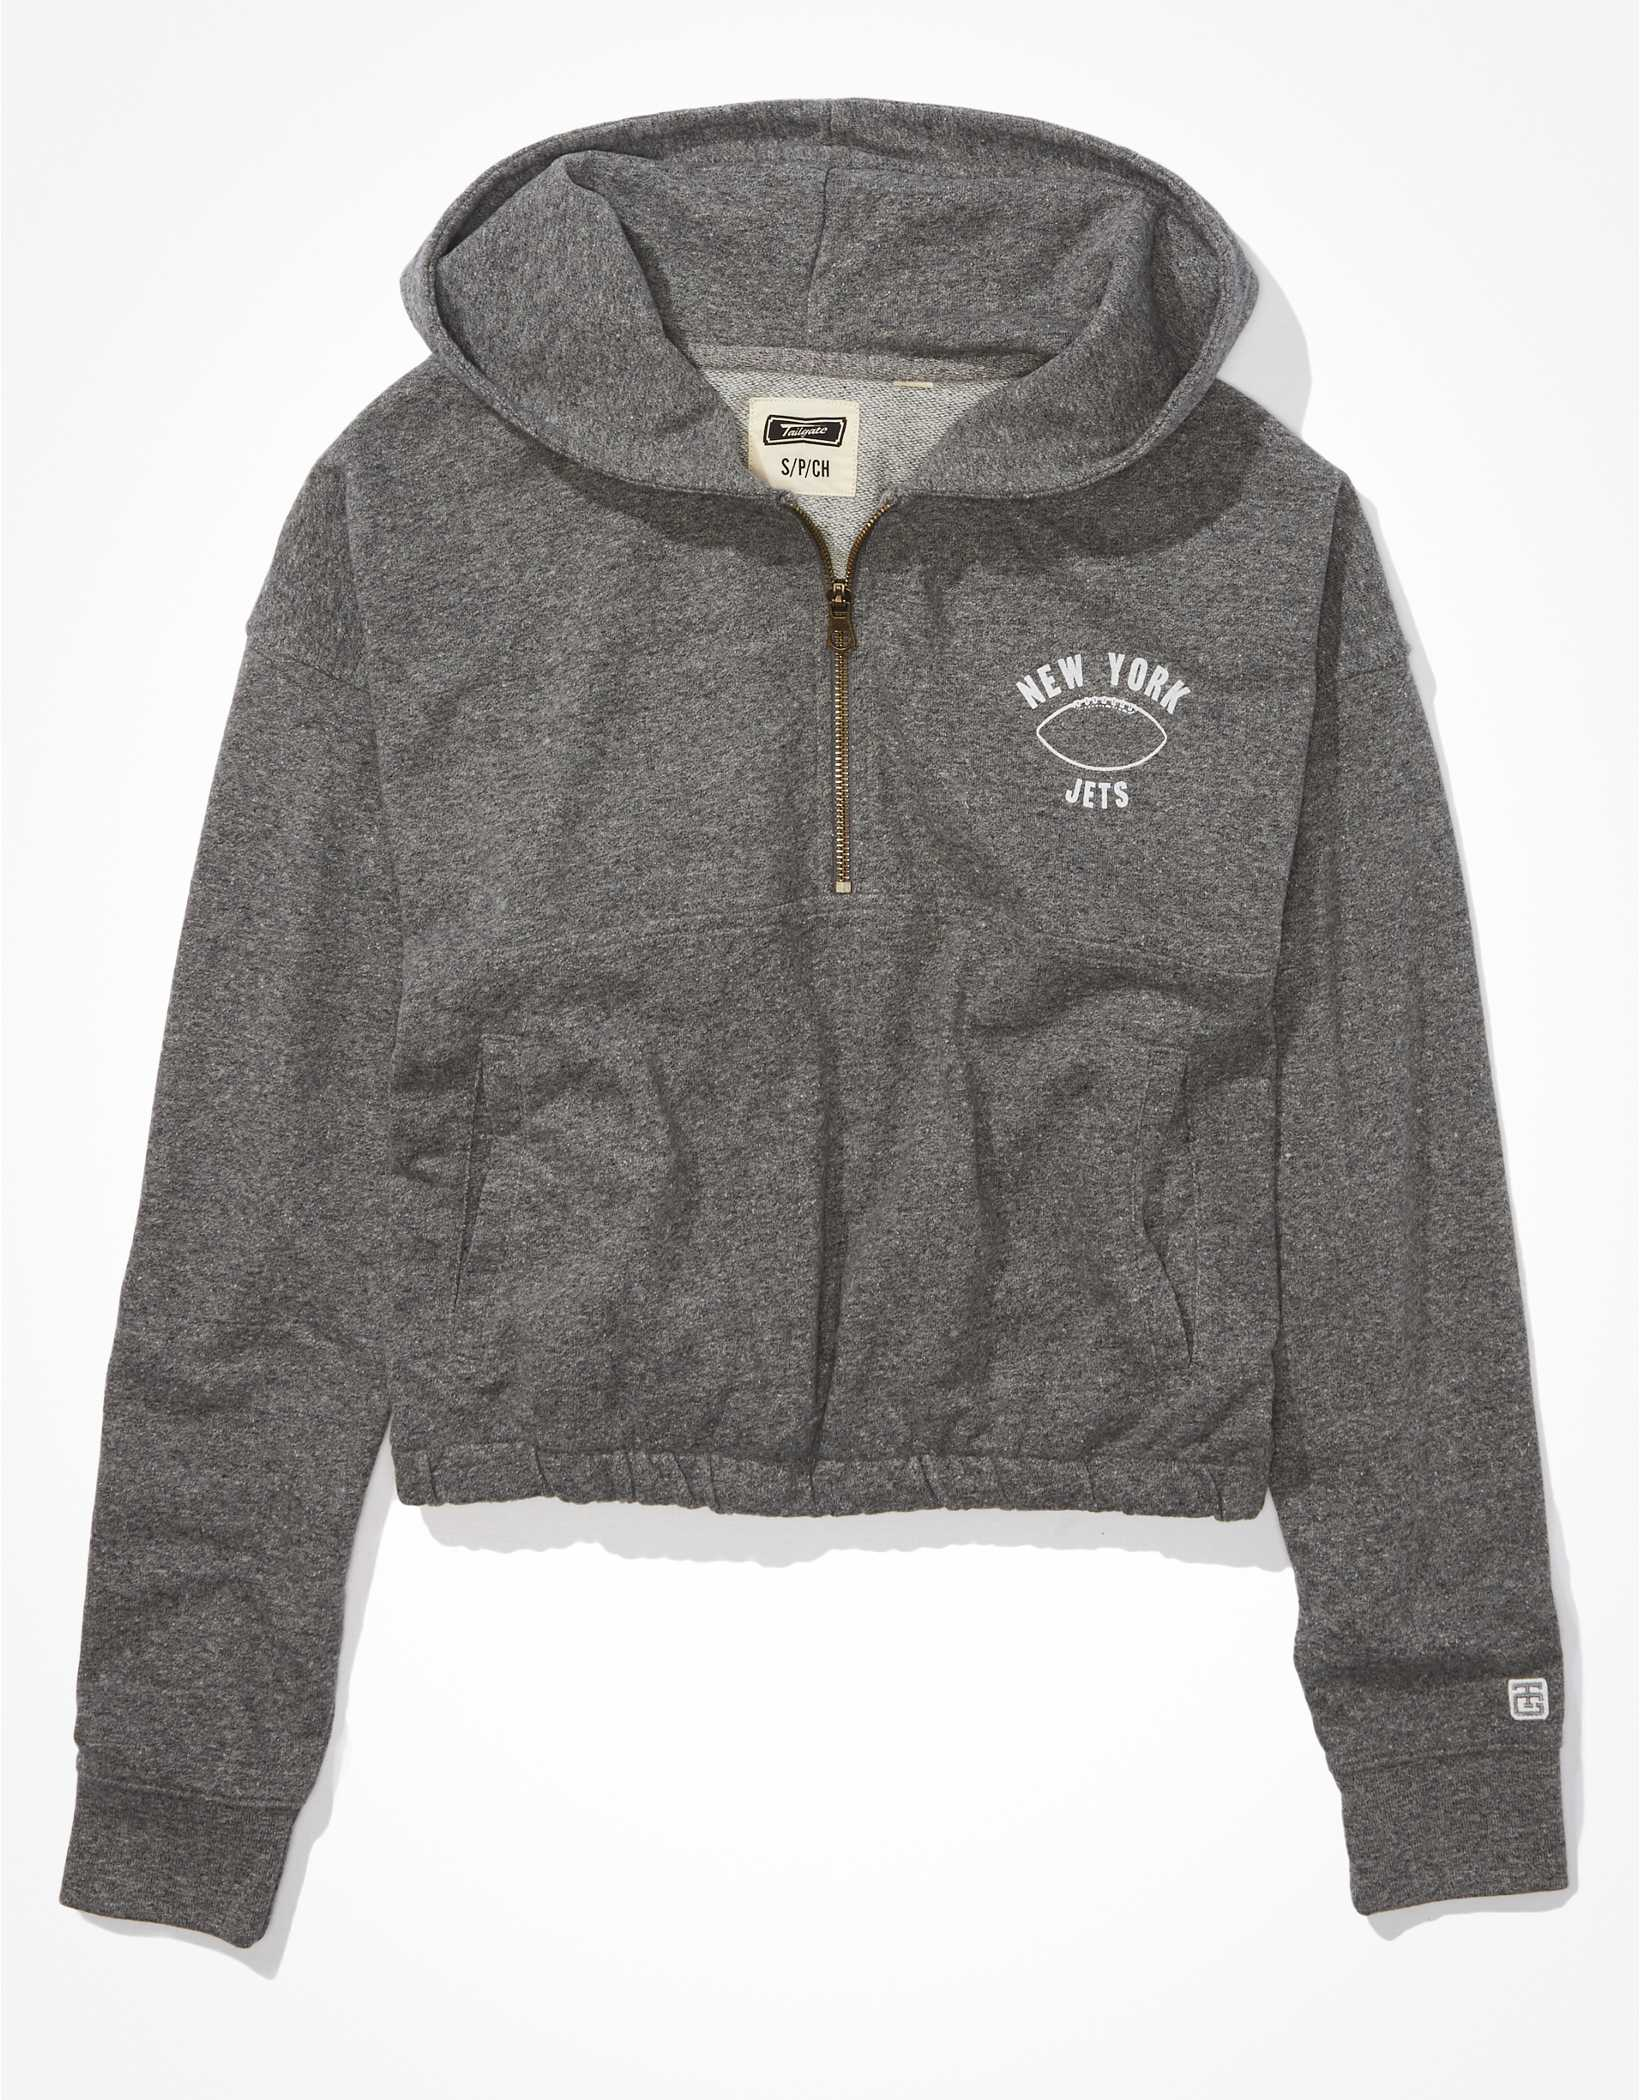 Tailgate Women's New York Jets Cinched 1/2 Zip Hoodie